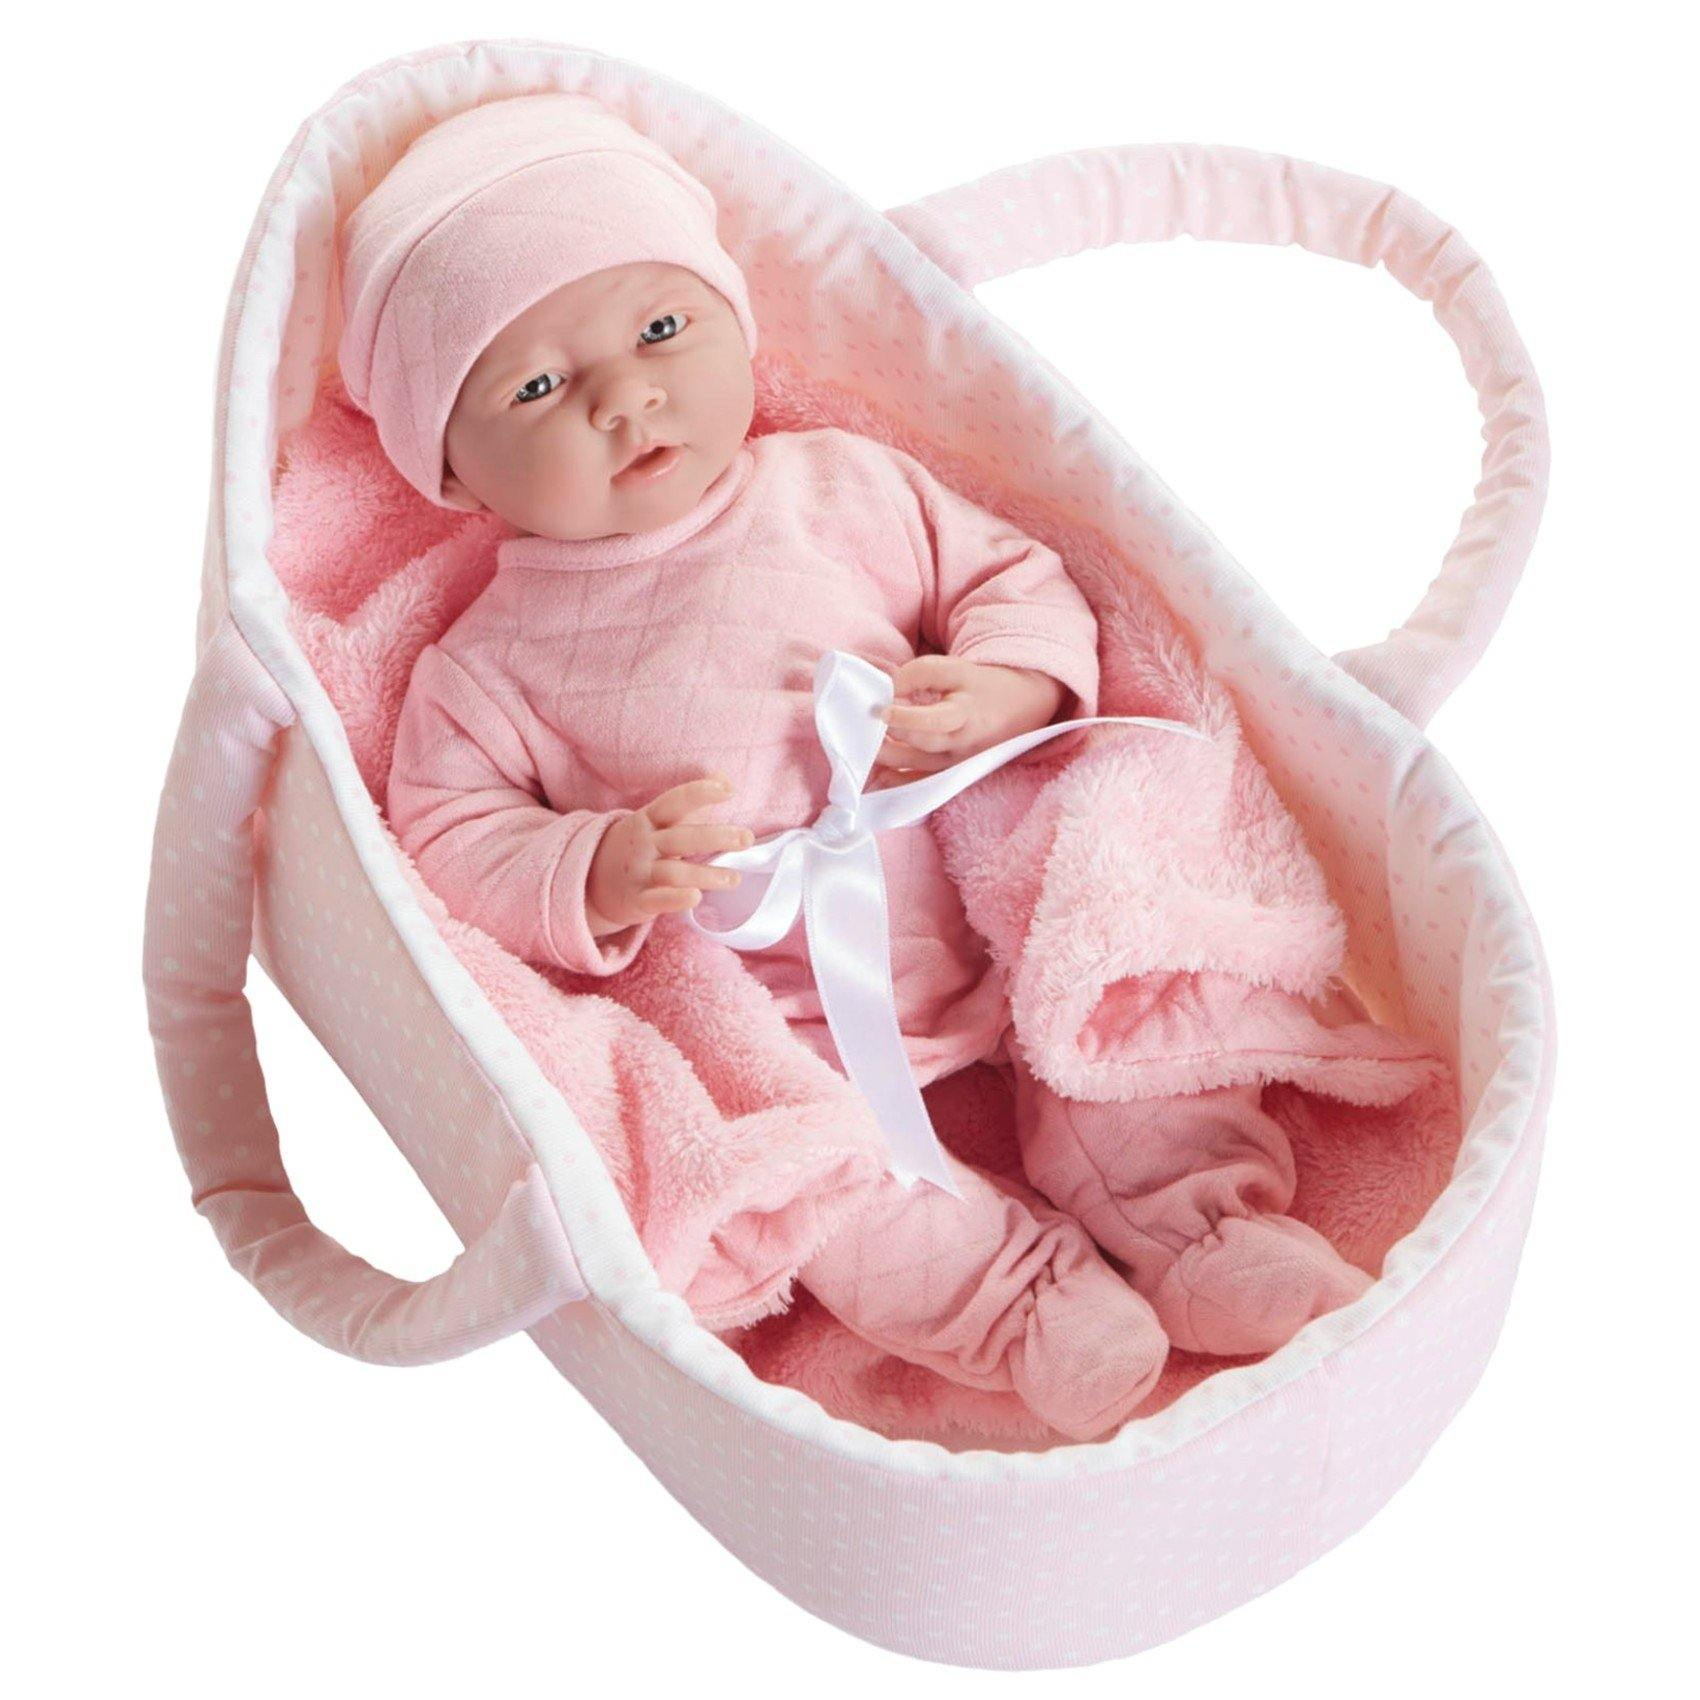 JC Toys, La Newborn Realistic 15.5in Baby Doll With Fabric Basket & Gift Set